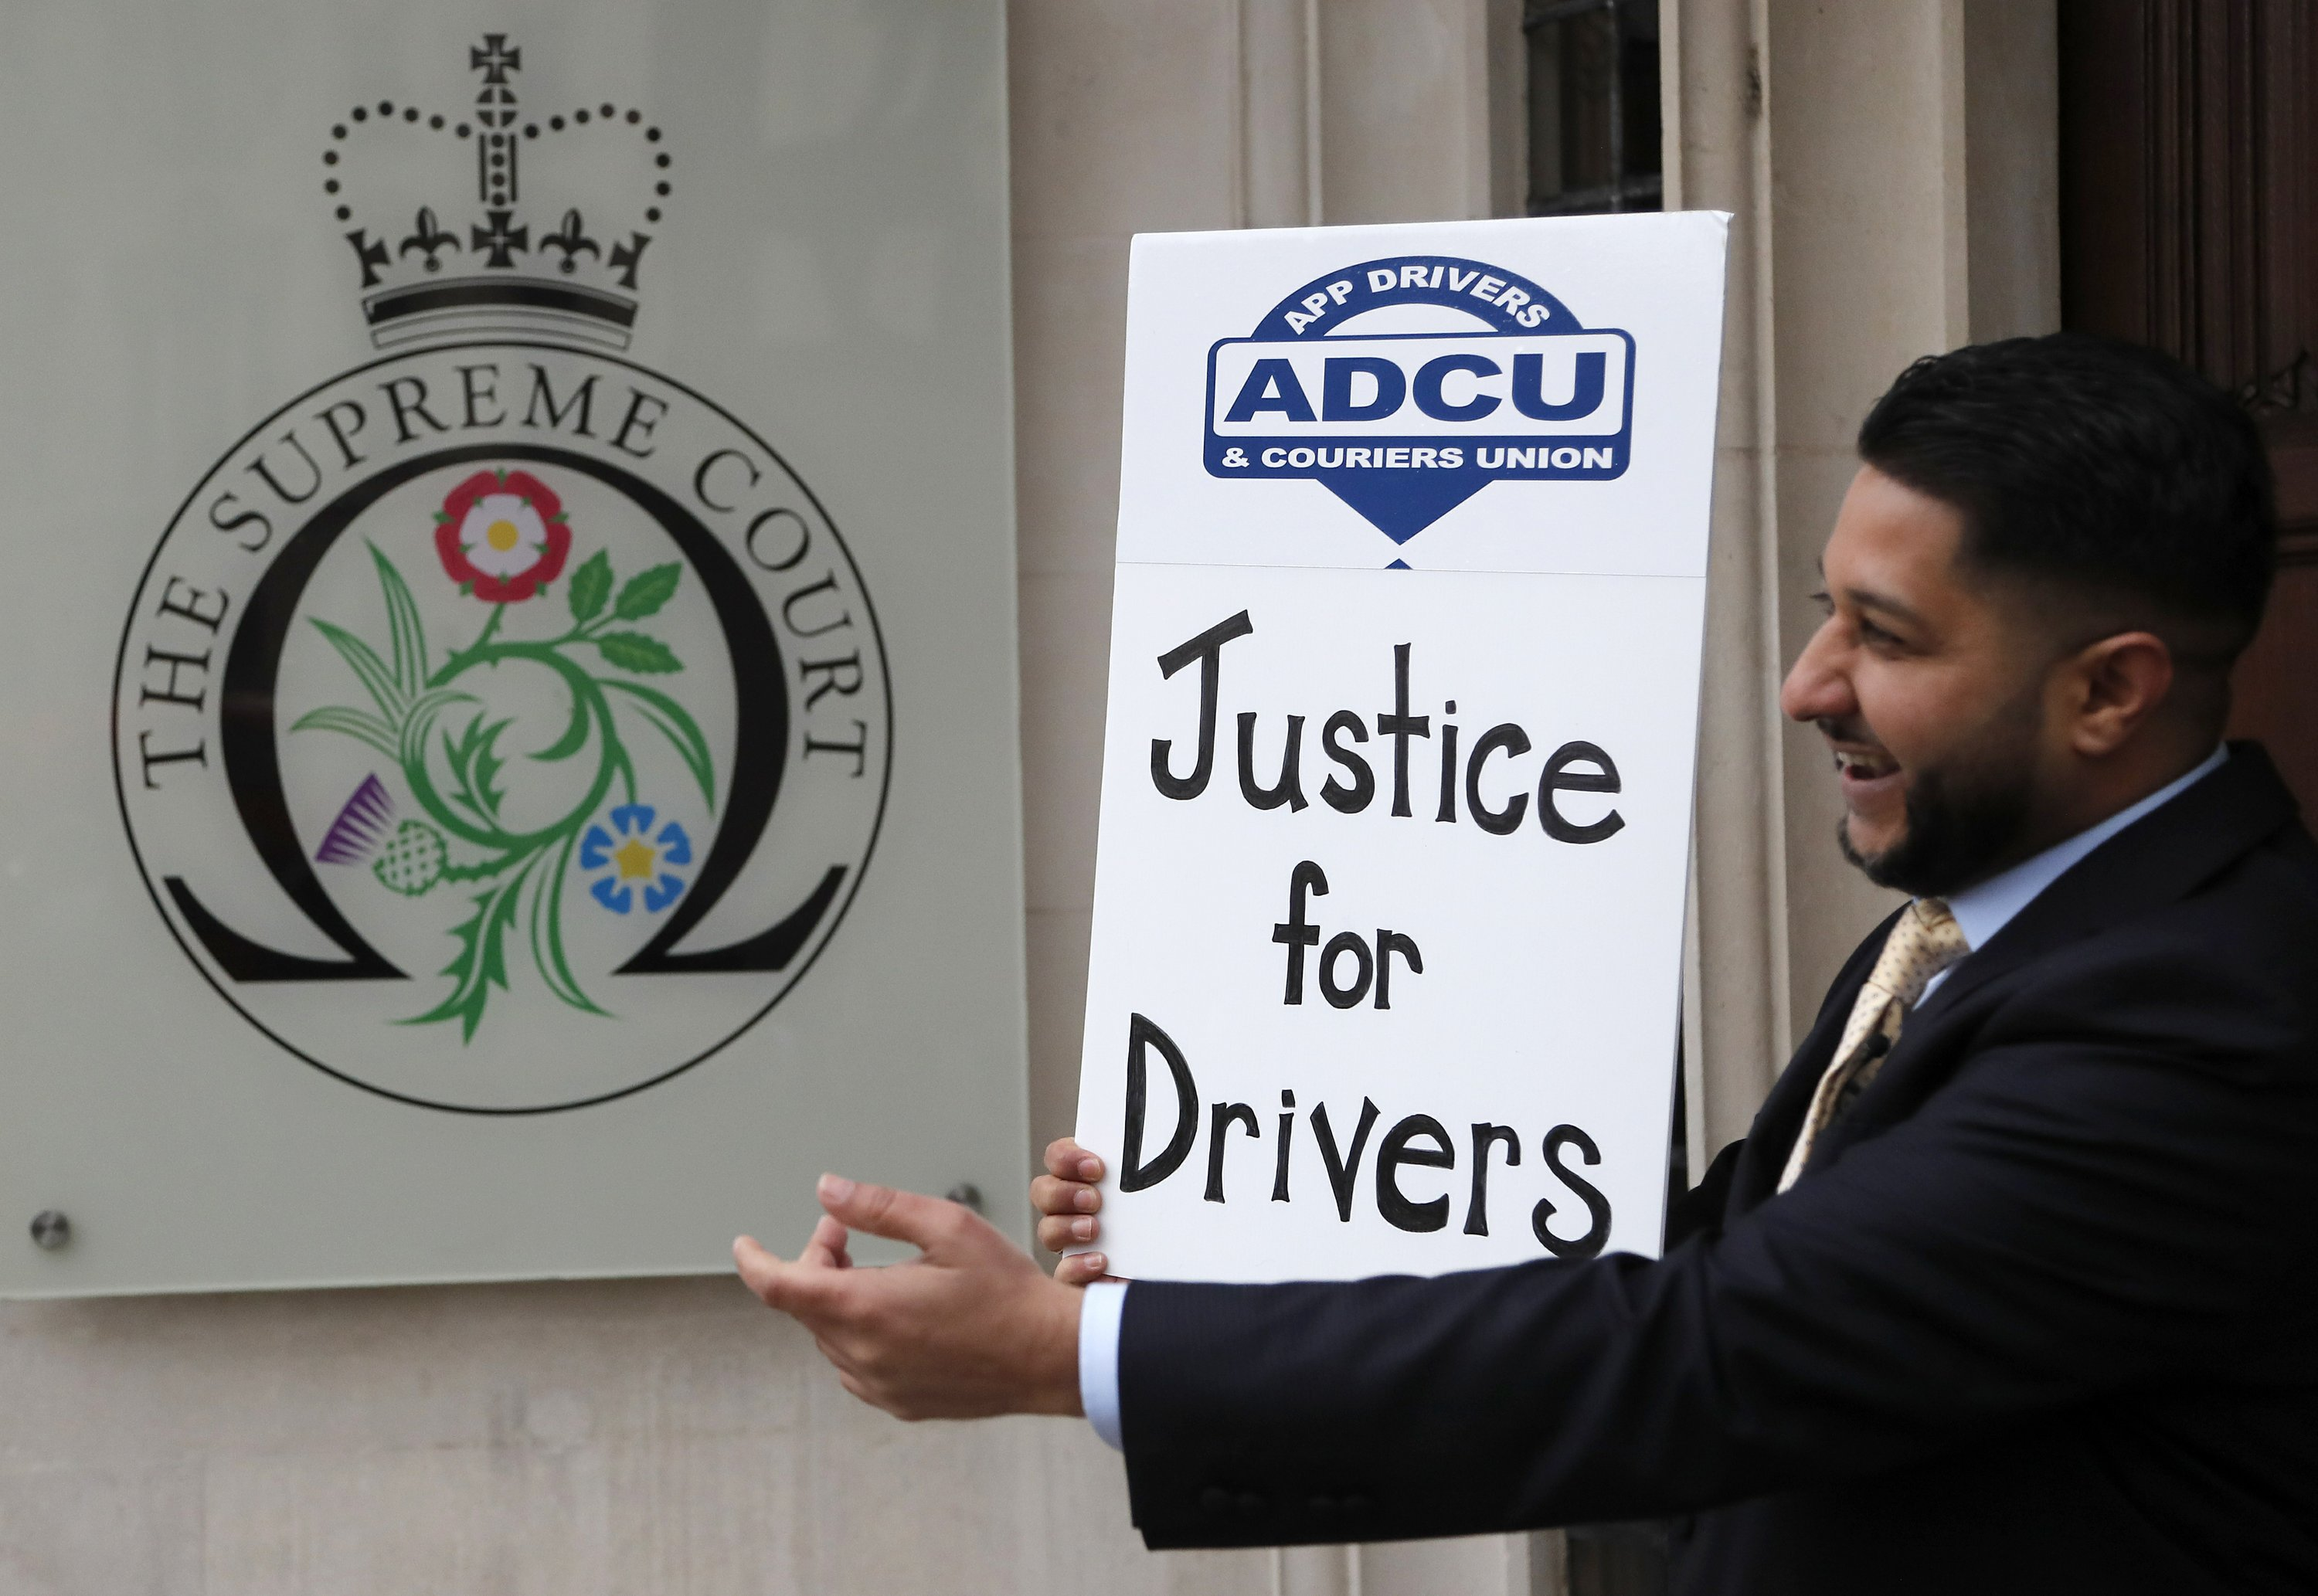 UK top court gives Uber drivers benefits in landmark ruling – The Associated Press